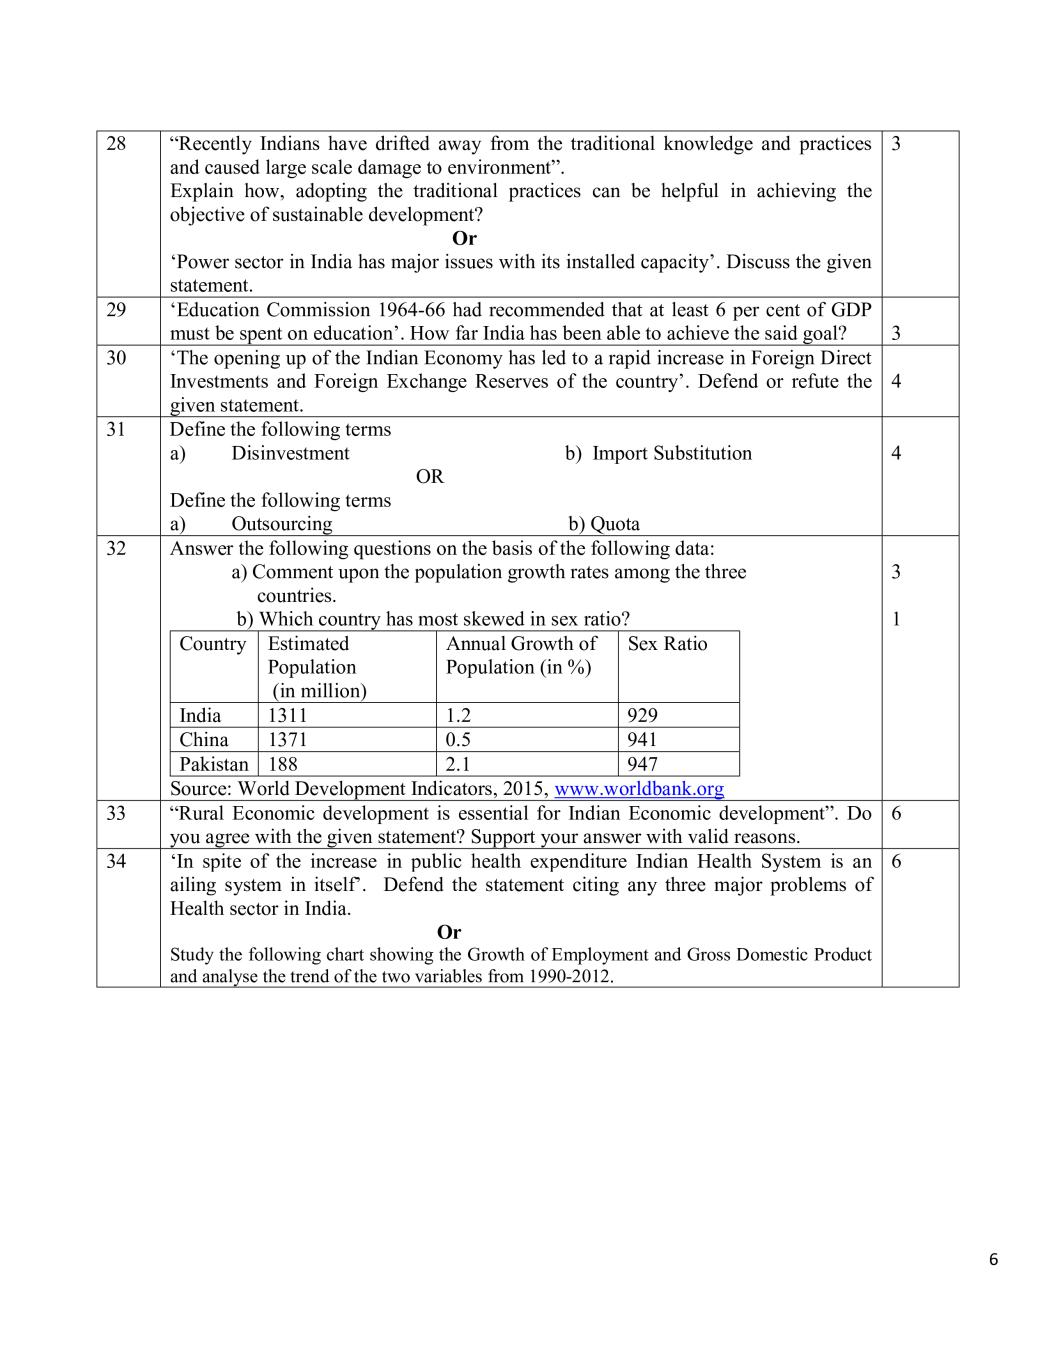 CBSE Sample Papers 2020 for Class 12 – Economics